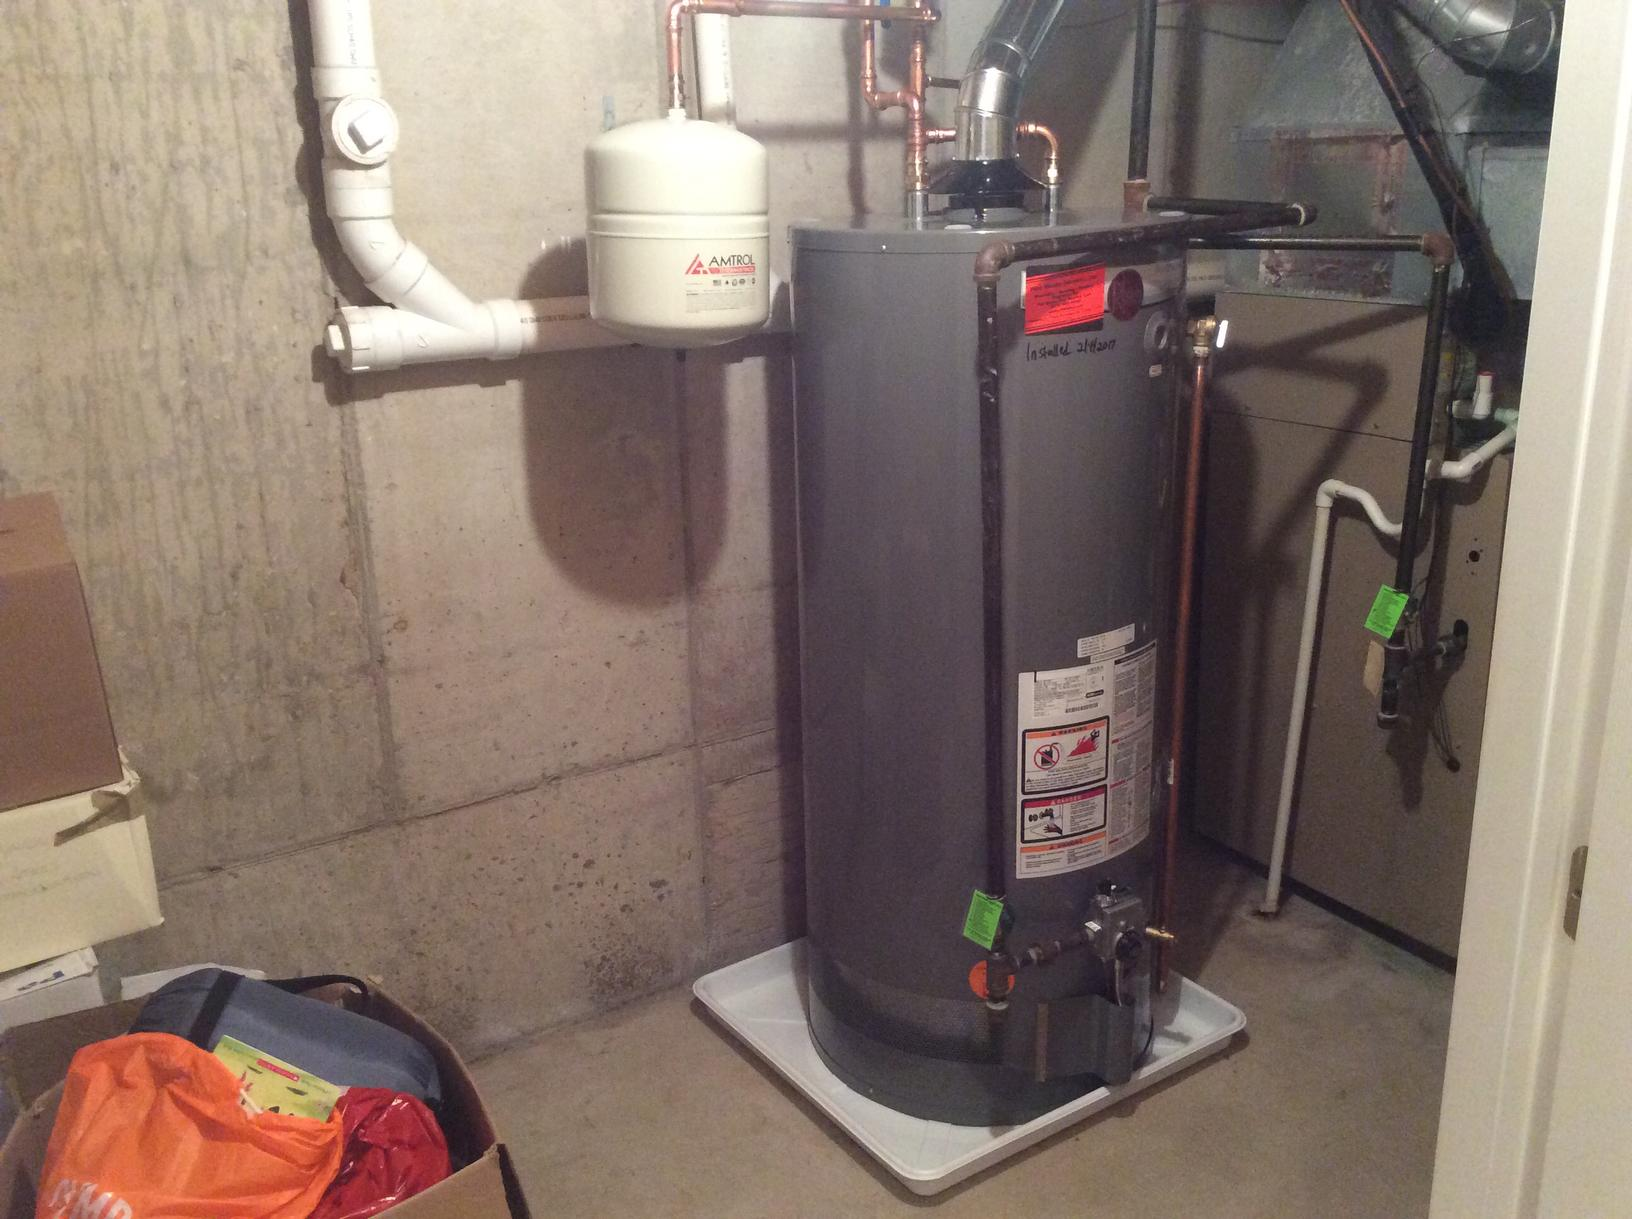 Rheem Water Heater Replacement in Basking Ridge, NJ - After Photo